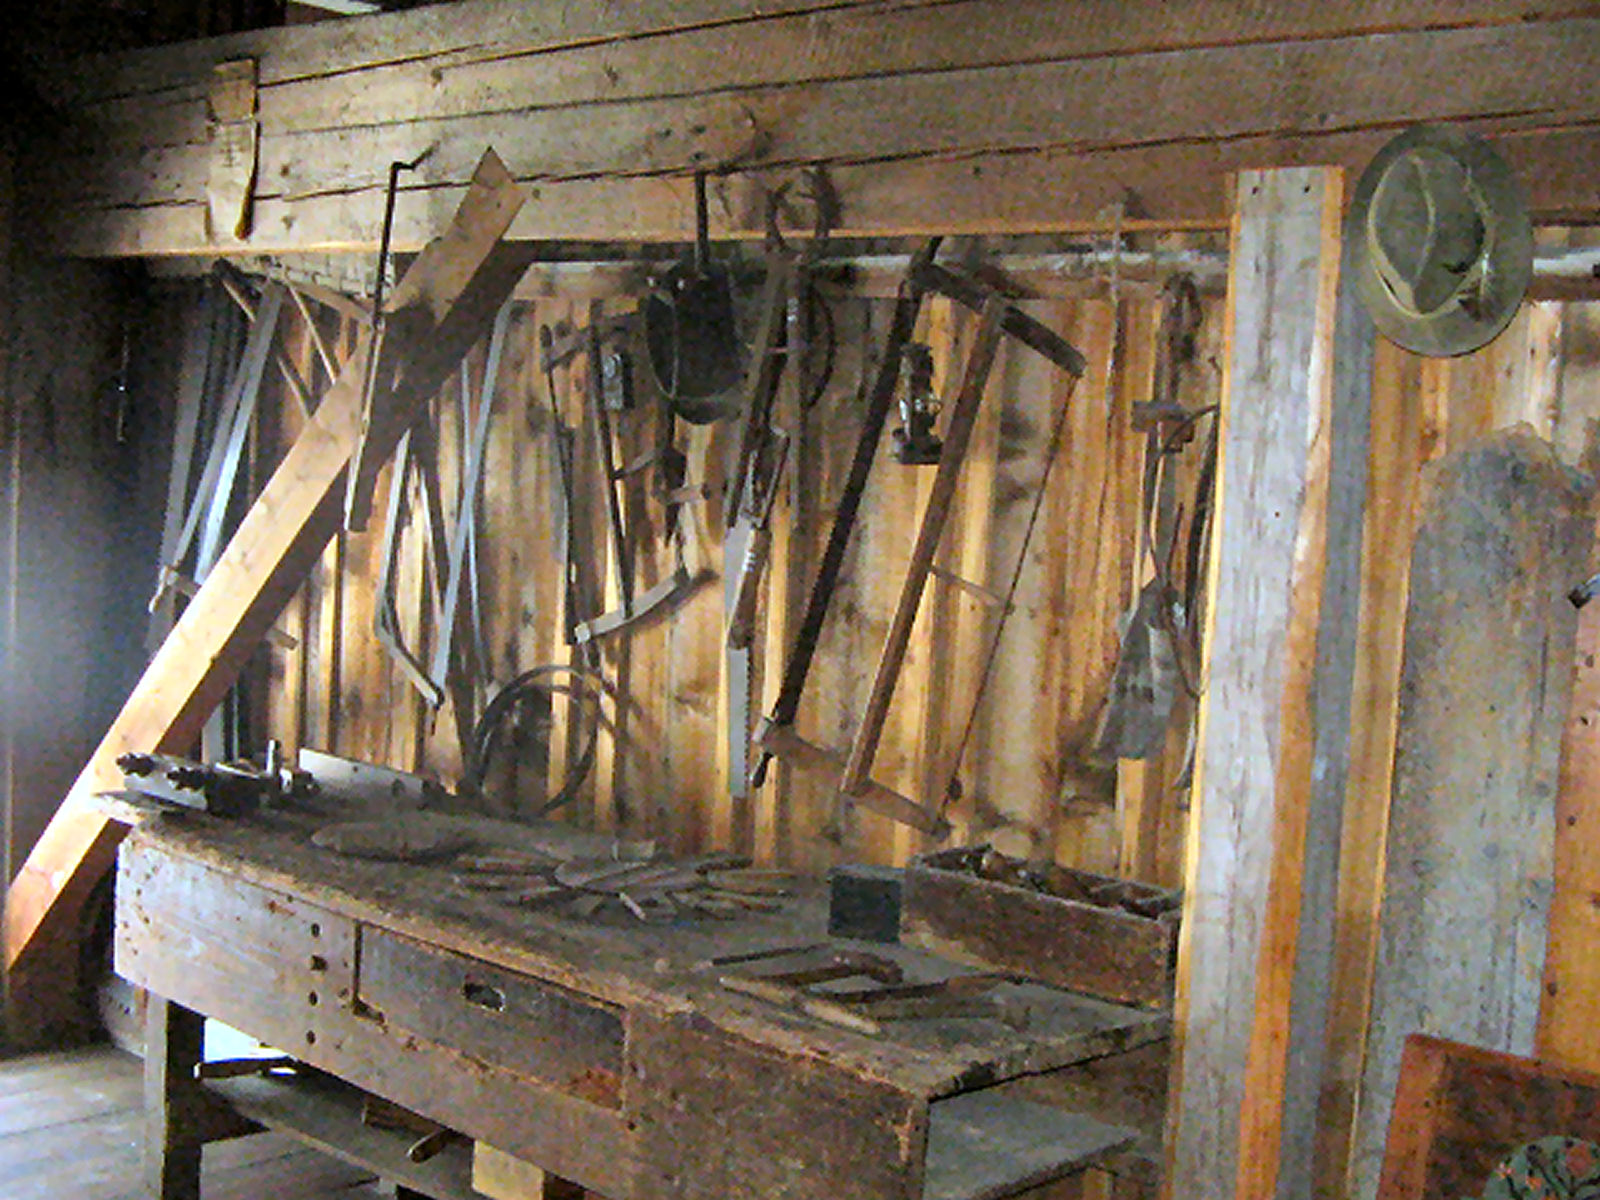 liznjek-farm-carpentry-tools-kranjska-gora